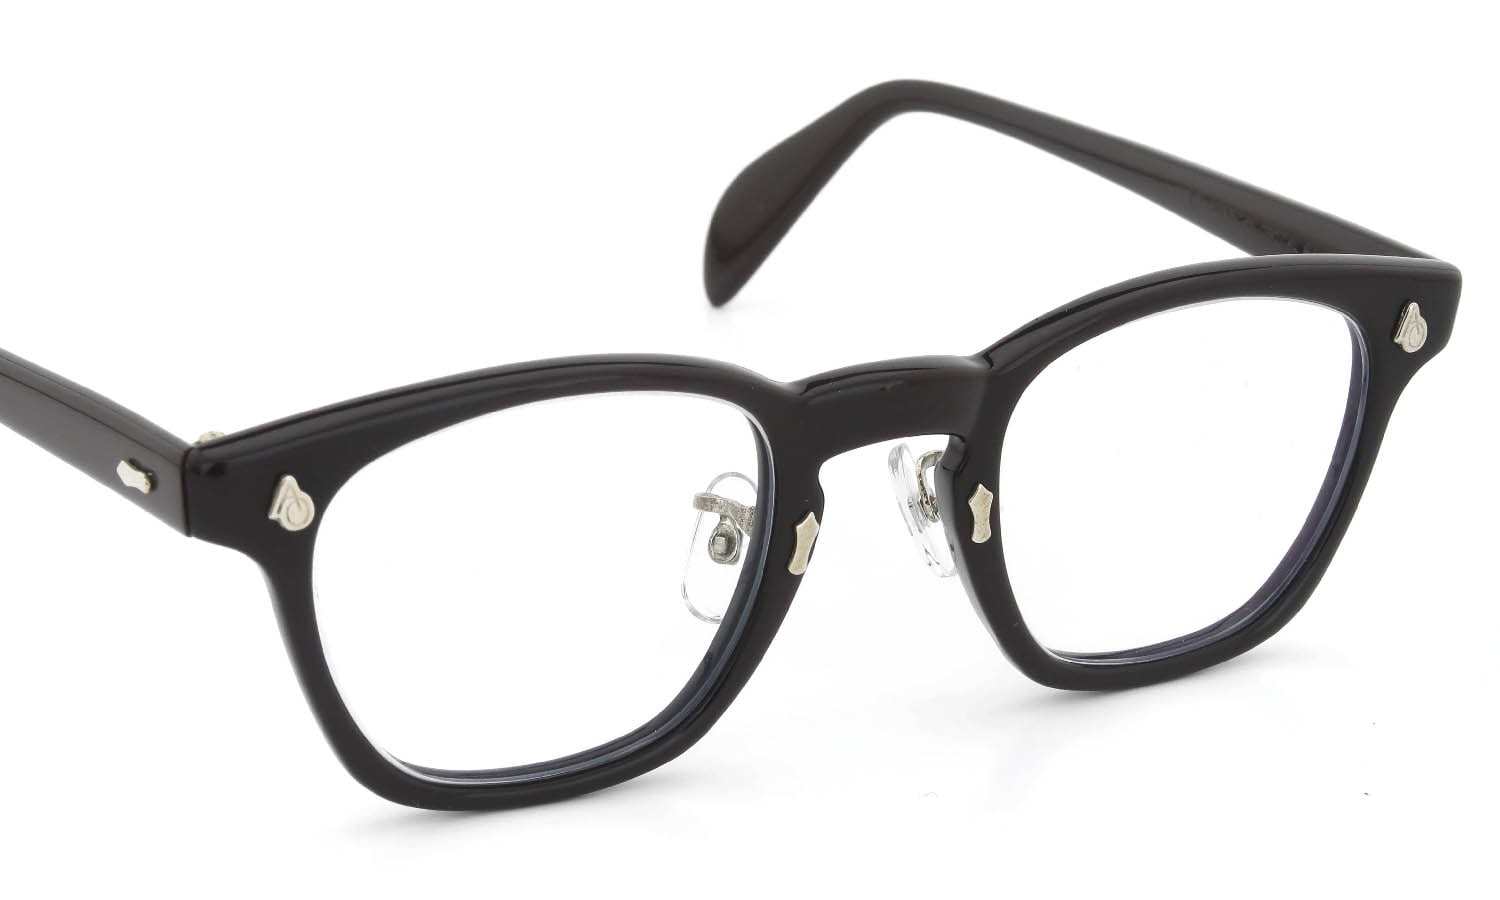 American Optical vintage 1970s-1980s AO鋲 Square Saftyglasses Chocolate 46-24 ADJUSTABLE-NOSE-PADS